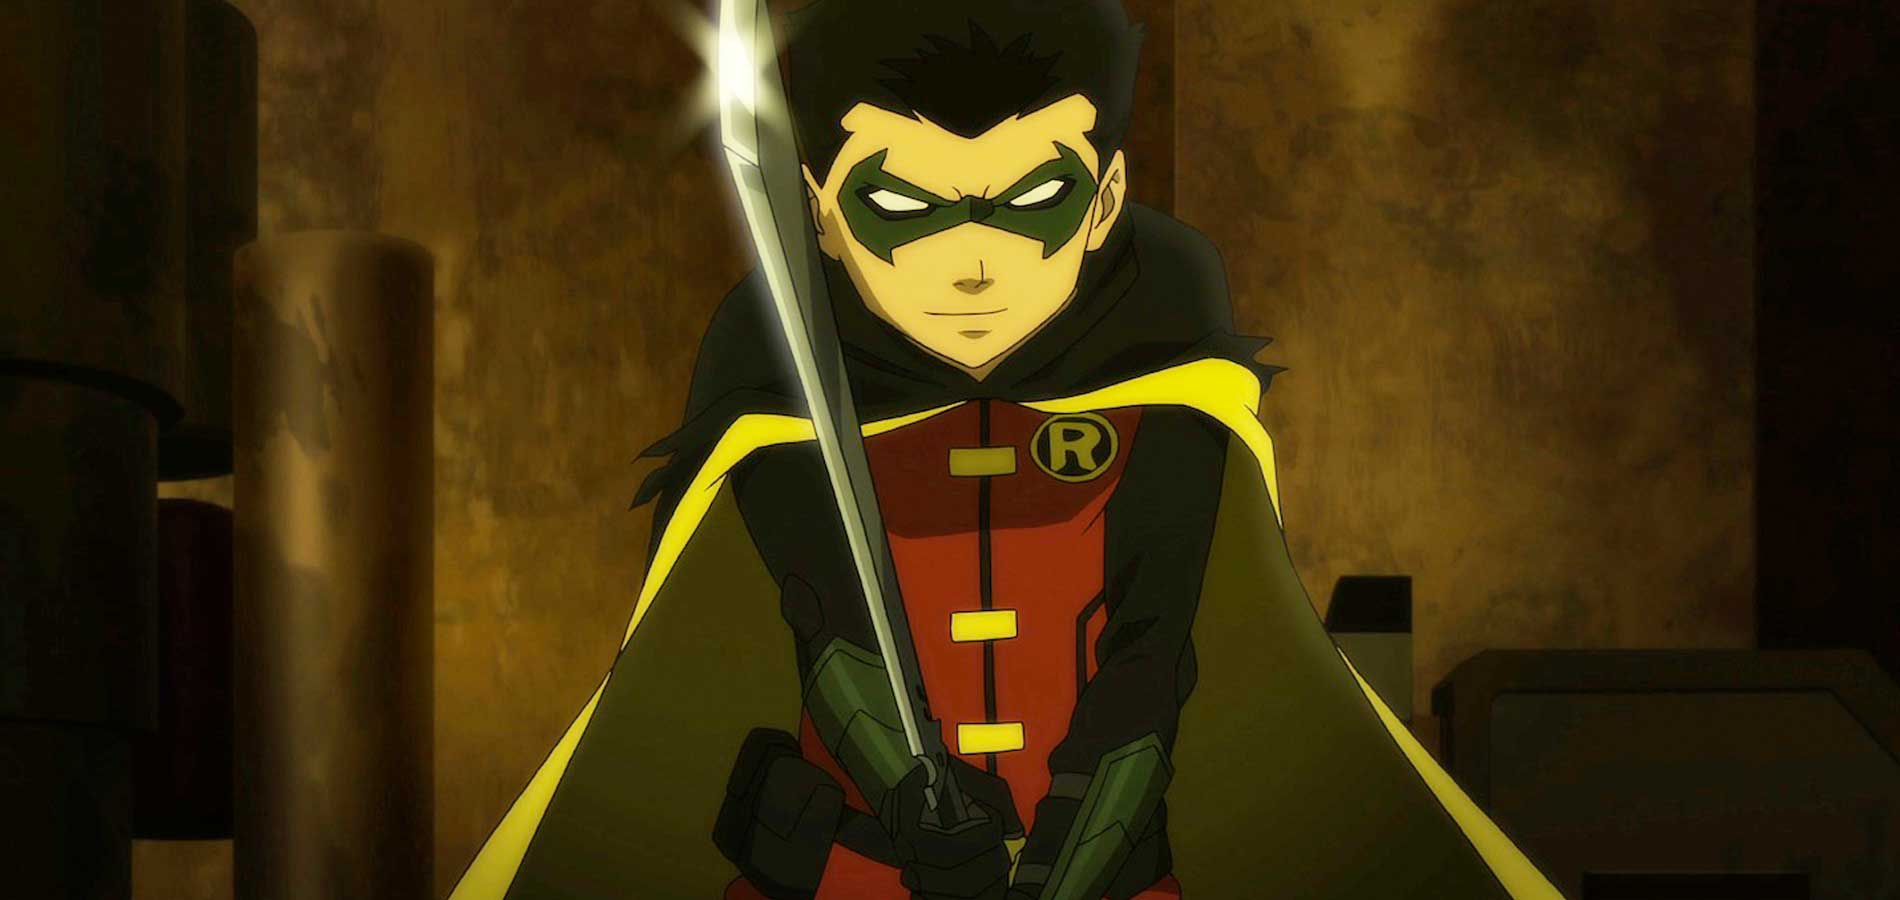 Damian Wayne, the 5th Robin. Source: DC Comics